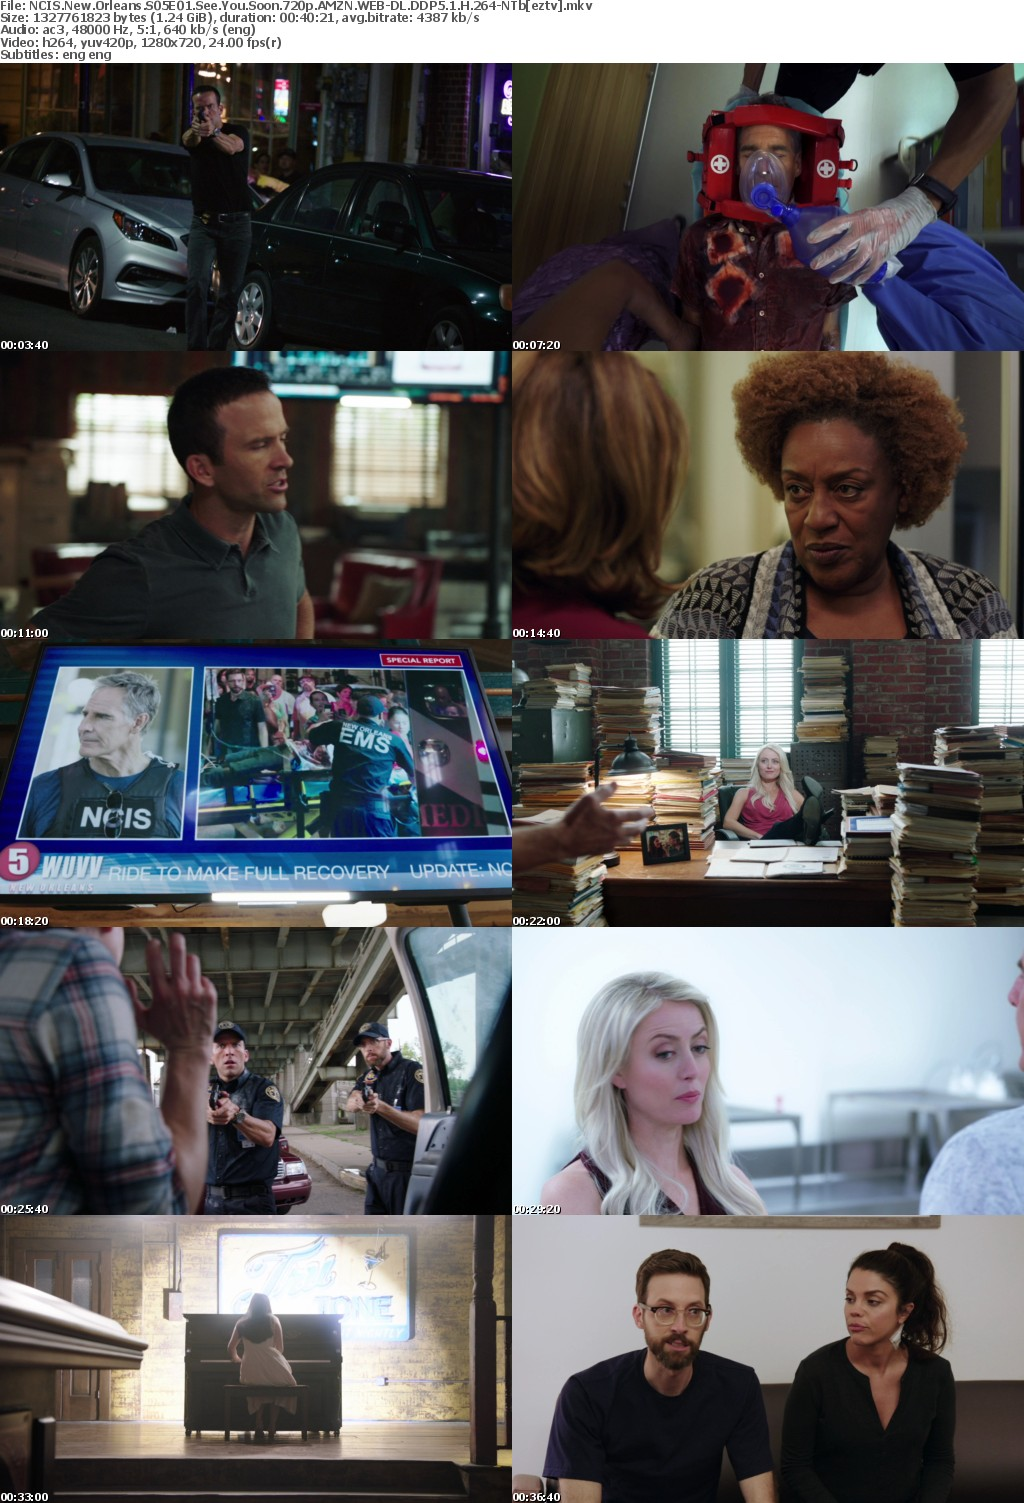 NCIS New Orleans S05E01 See You Soon 720p AMZN WEB-DL DDP5 1 H 264-NTb